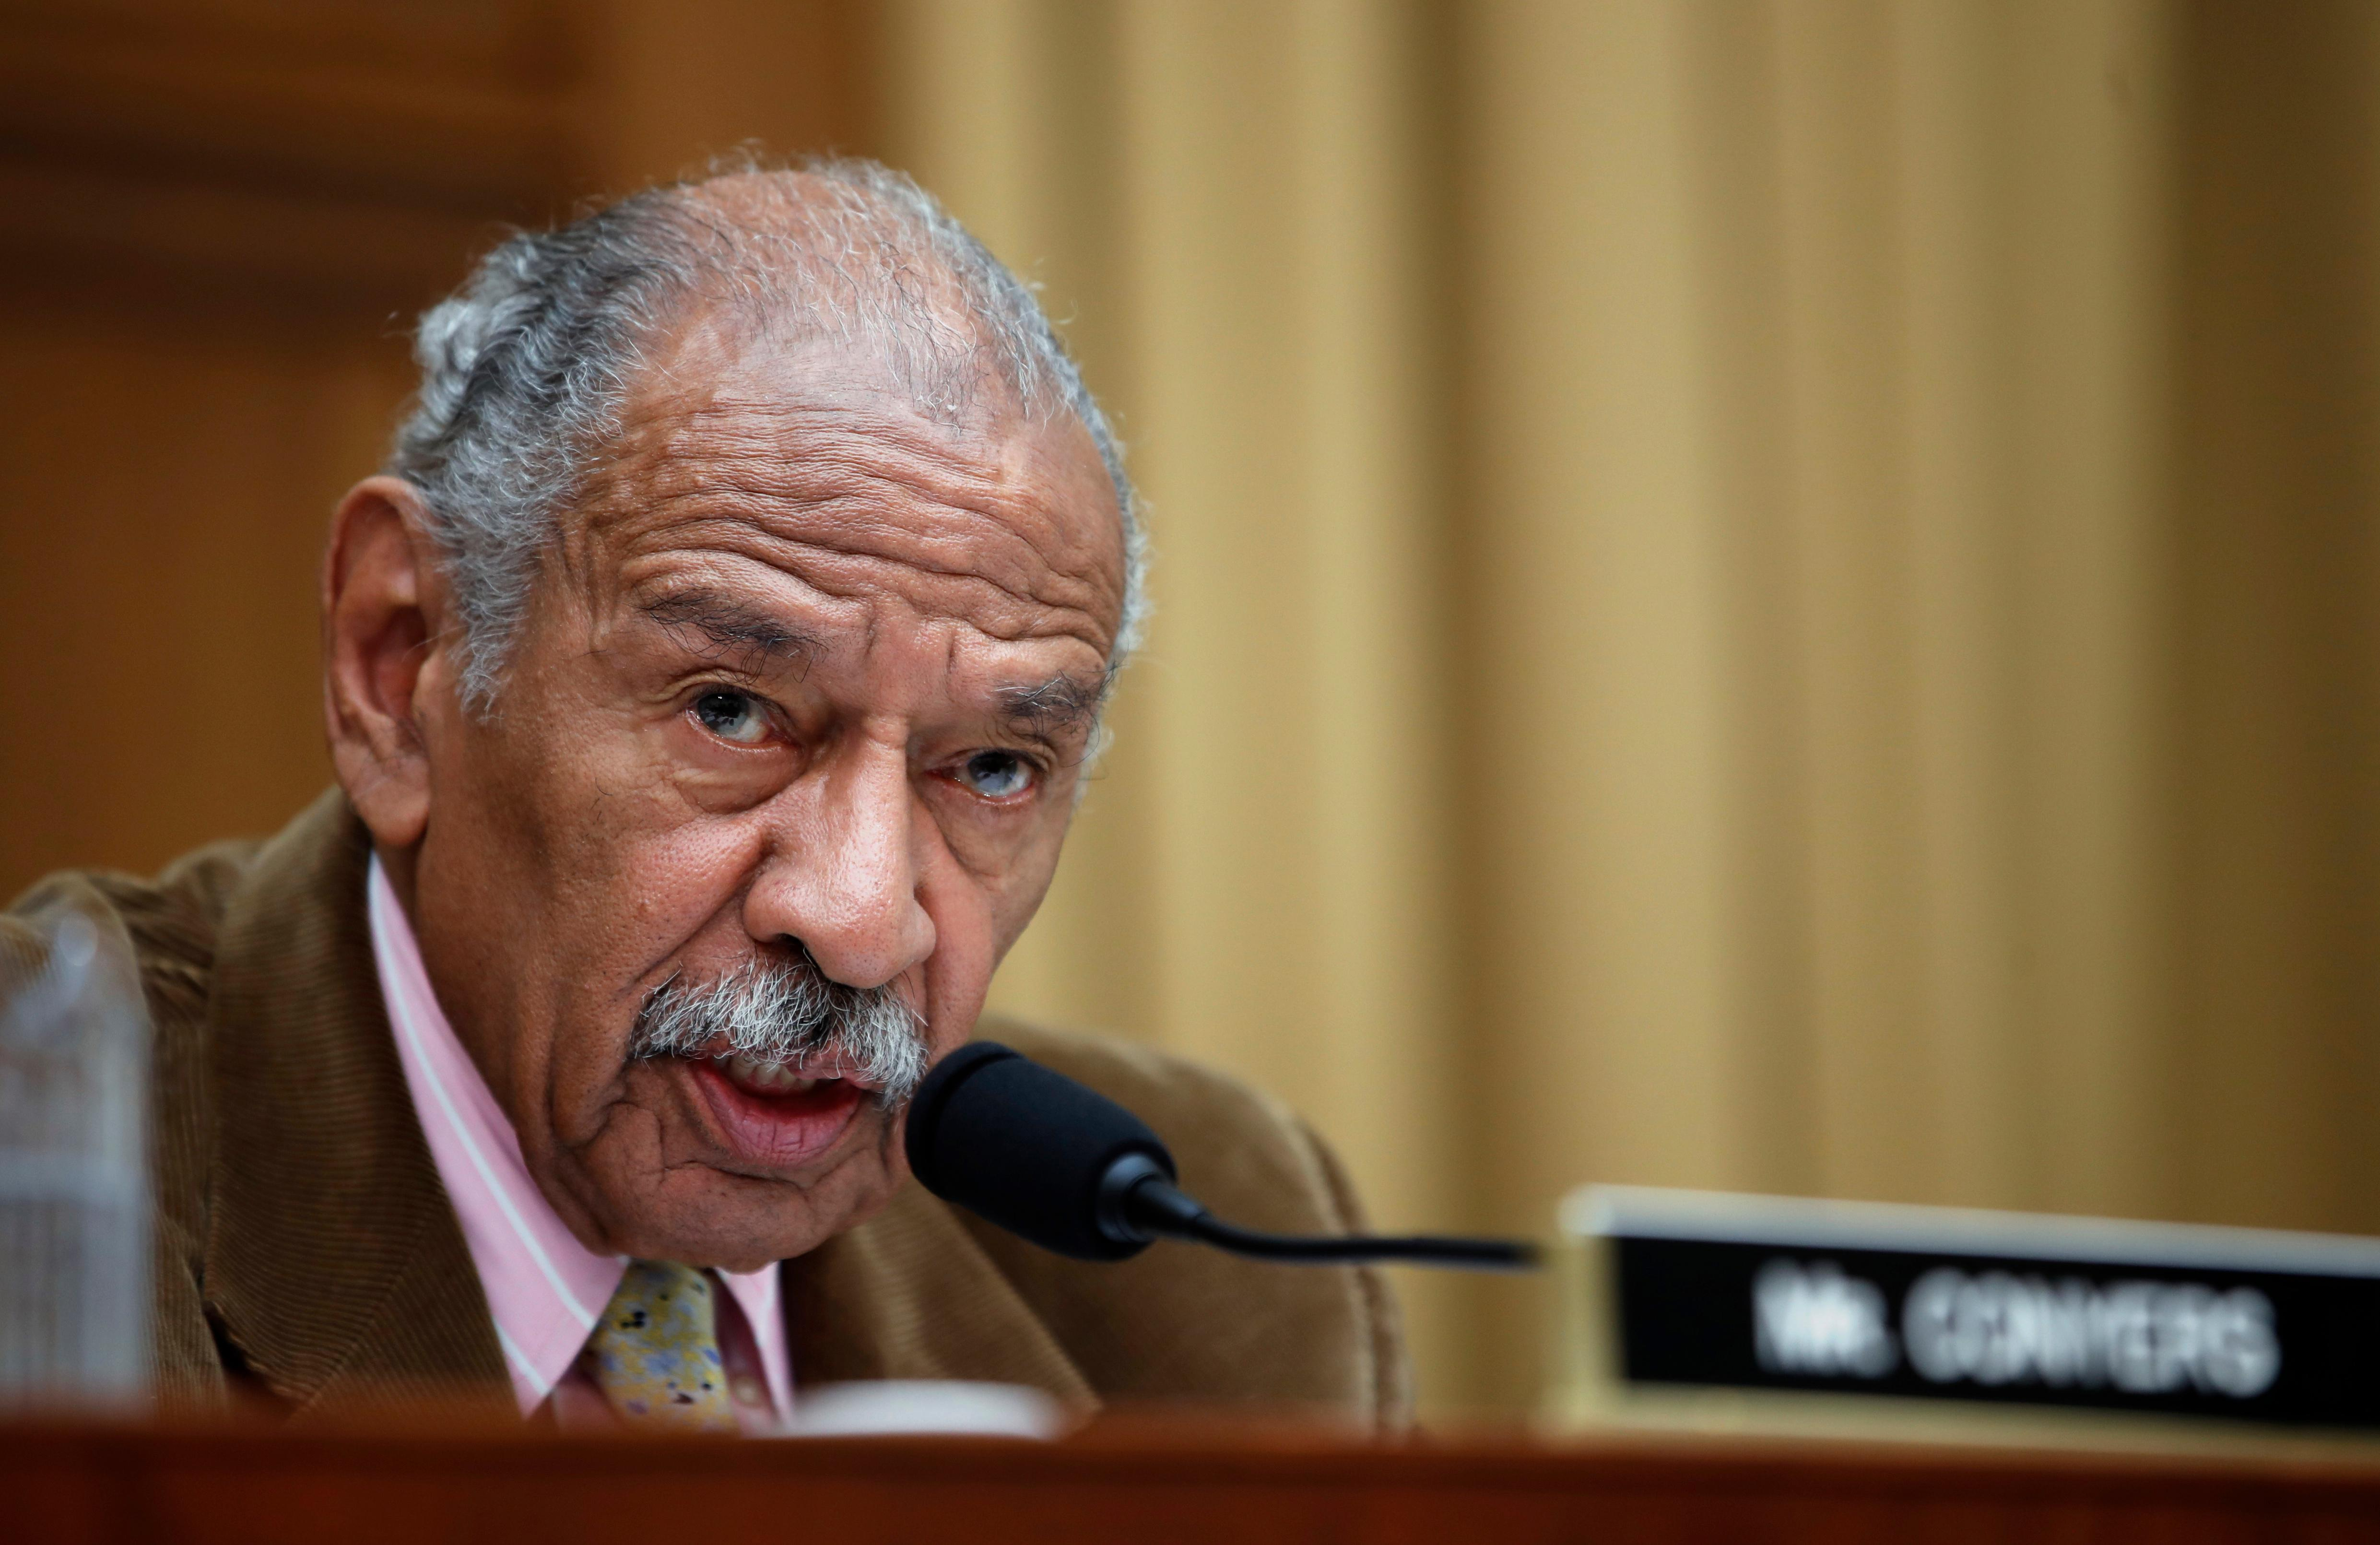 FILE- In this April 4, 2017, file photo, Rep. John Conyers, D-Mich., speaks during a hearing of the House Judiciary subcommittee on Capitol Hill in Washington. (AP Photo/Alex Brandon, File)<p></p>